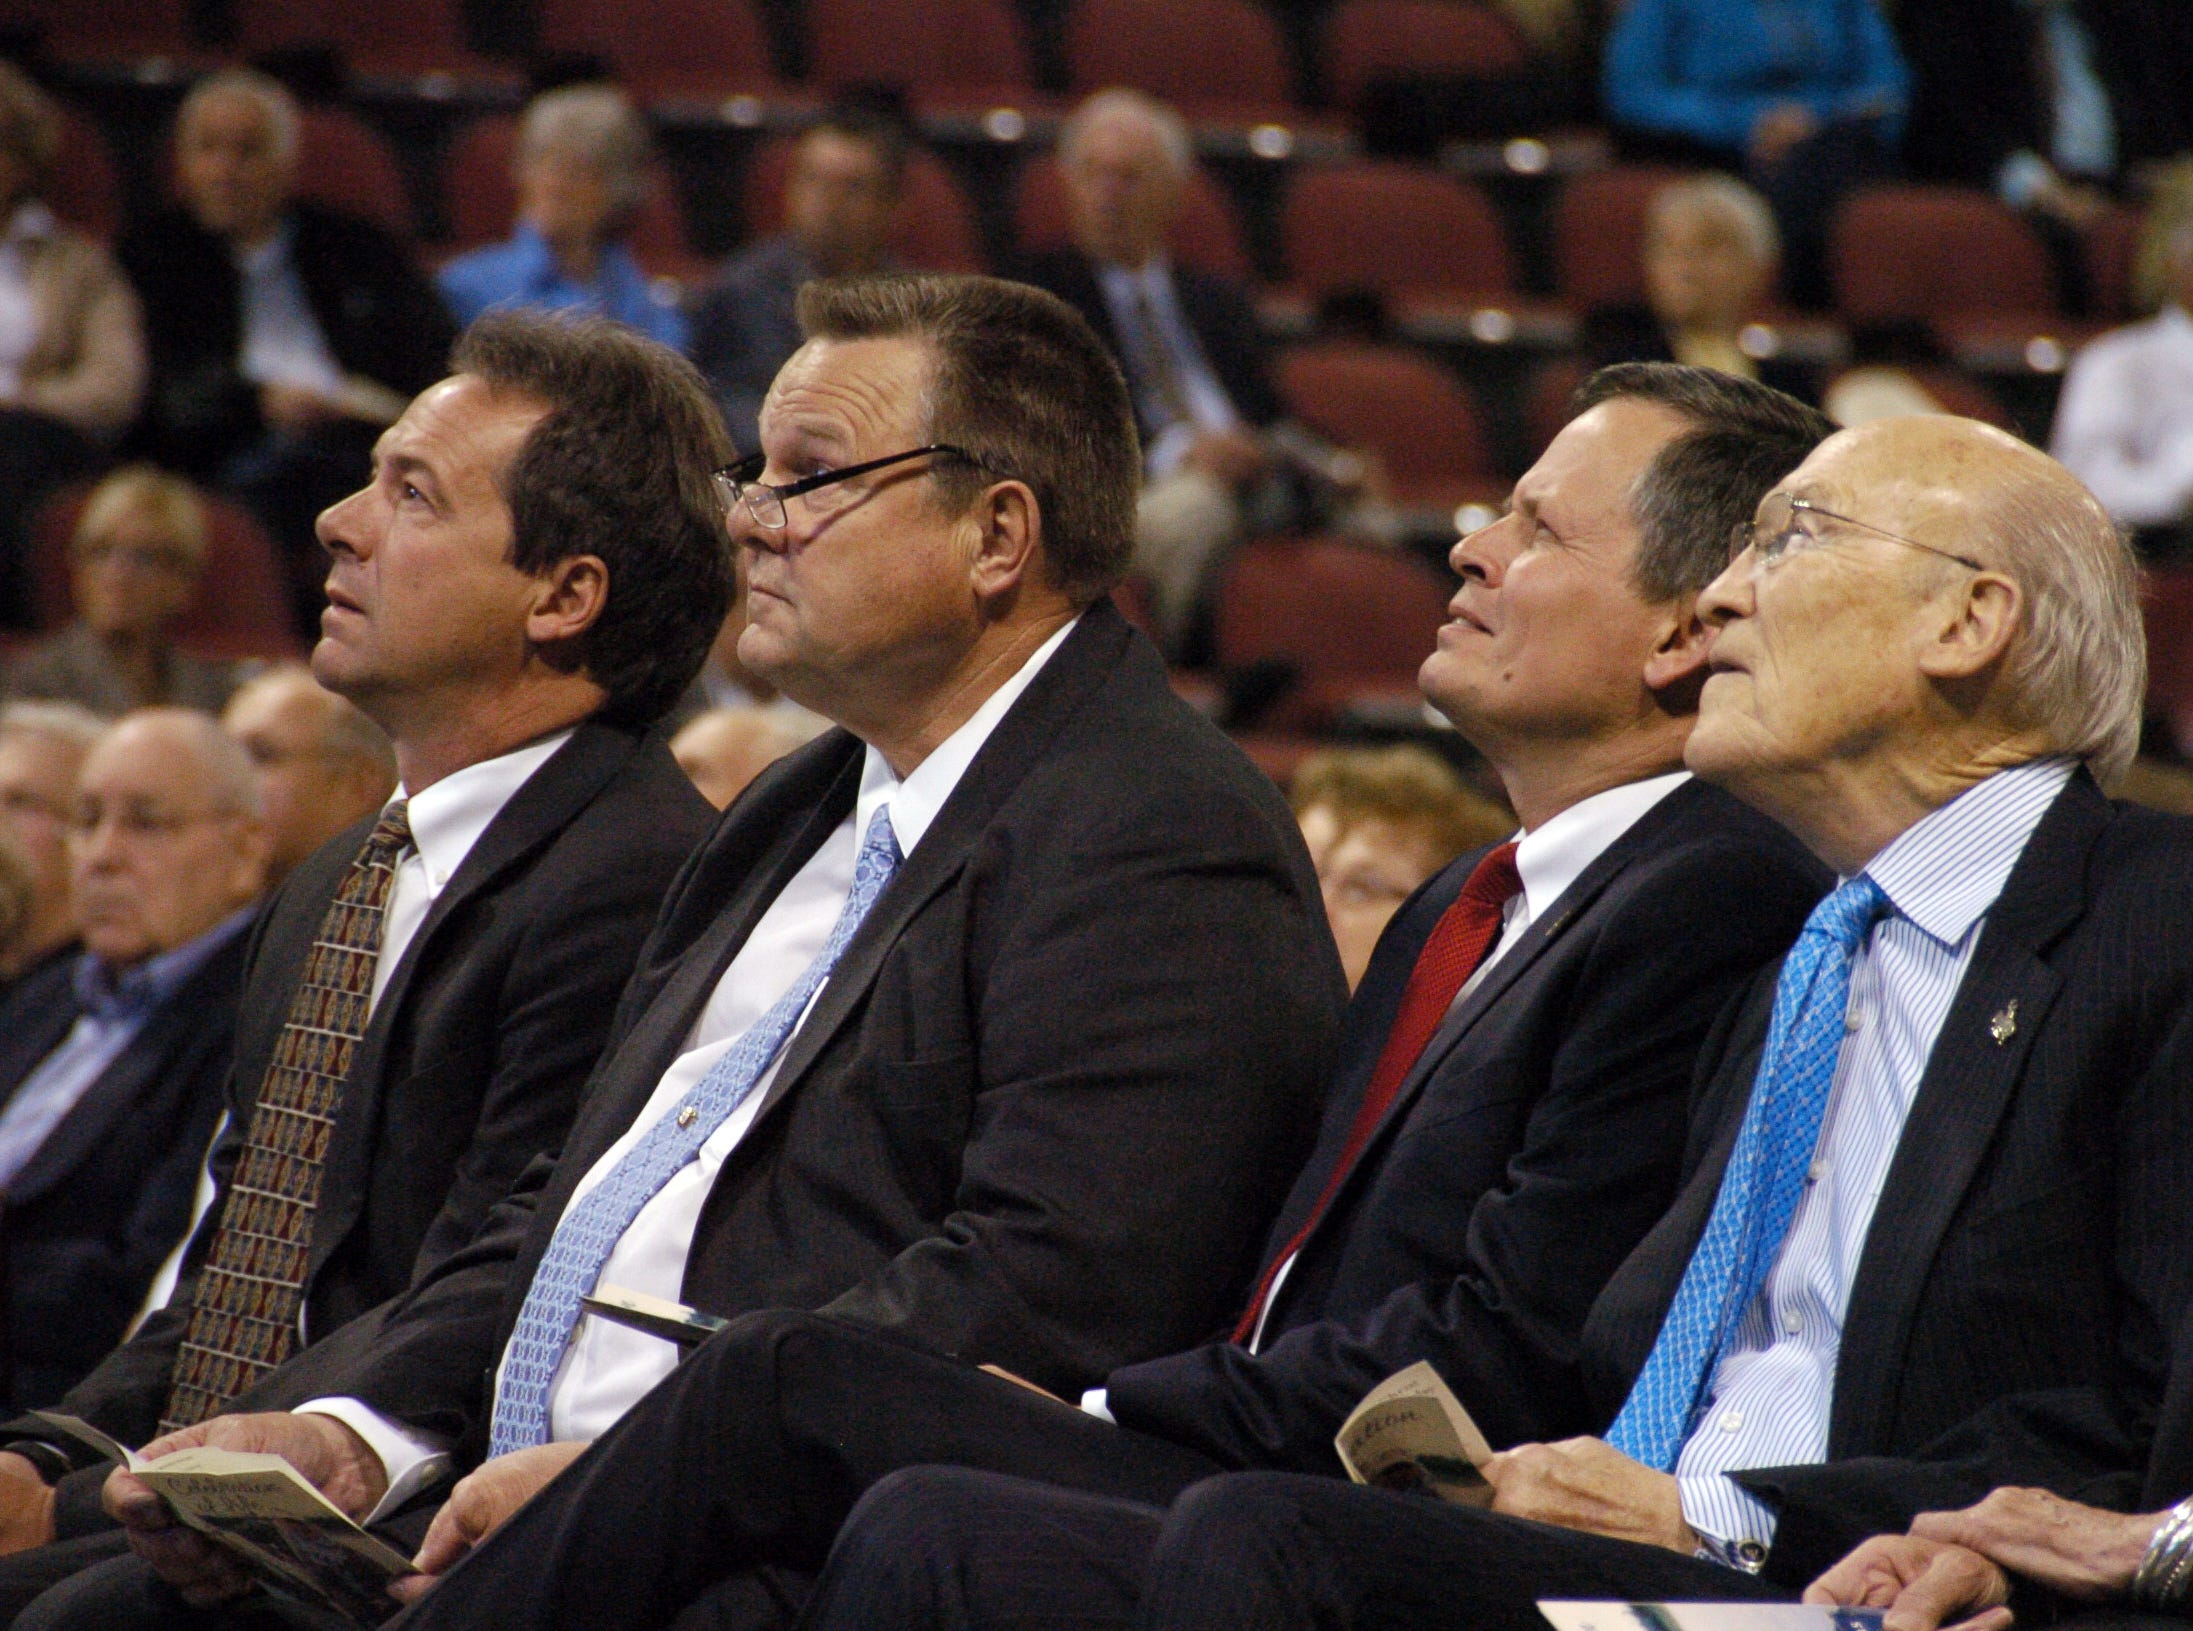 AP Photos/Matthew Brown From left, Montana Gov. Steve Bullock, Montana U.S. Sens. Jon Tester and Steve Daines and former Wyoming U.S. Sen. Alan Simpson watch a slideshow depicting the life of former Montana U.S. Sen. Conrad Burns during Burns? funeral service on Friday. From left, Montana Gov. Steve Bullock, Montana U.S. Sens. Jon Tester and Steve Daines and former Wyoming U.S. Sen. Alan Simpson, watch a slide show depicting the life of former Montana U.S. Sen. Conrad Burns during Burns' funeral service on Friday, May 6, 2016, at the Metra Park Arena in Billings, Mont. Tester narrowly defeated Burns in 2006. Burns died last week at the age of 81.   (AP Photo/Matthew Brown)